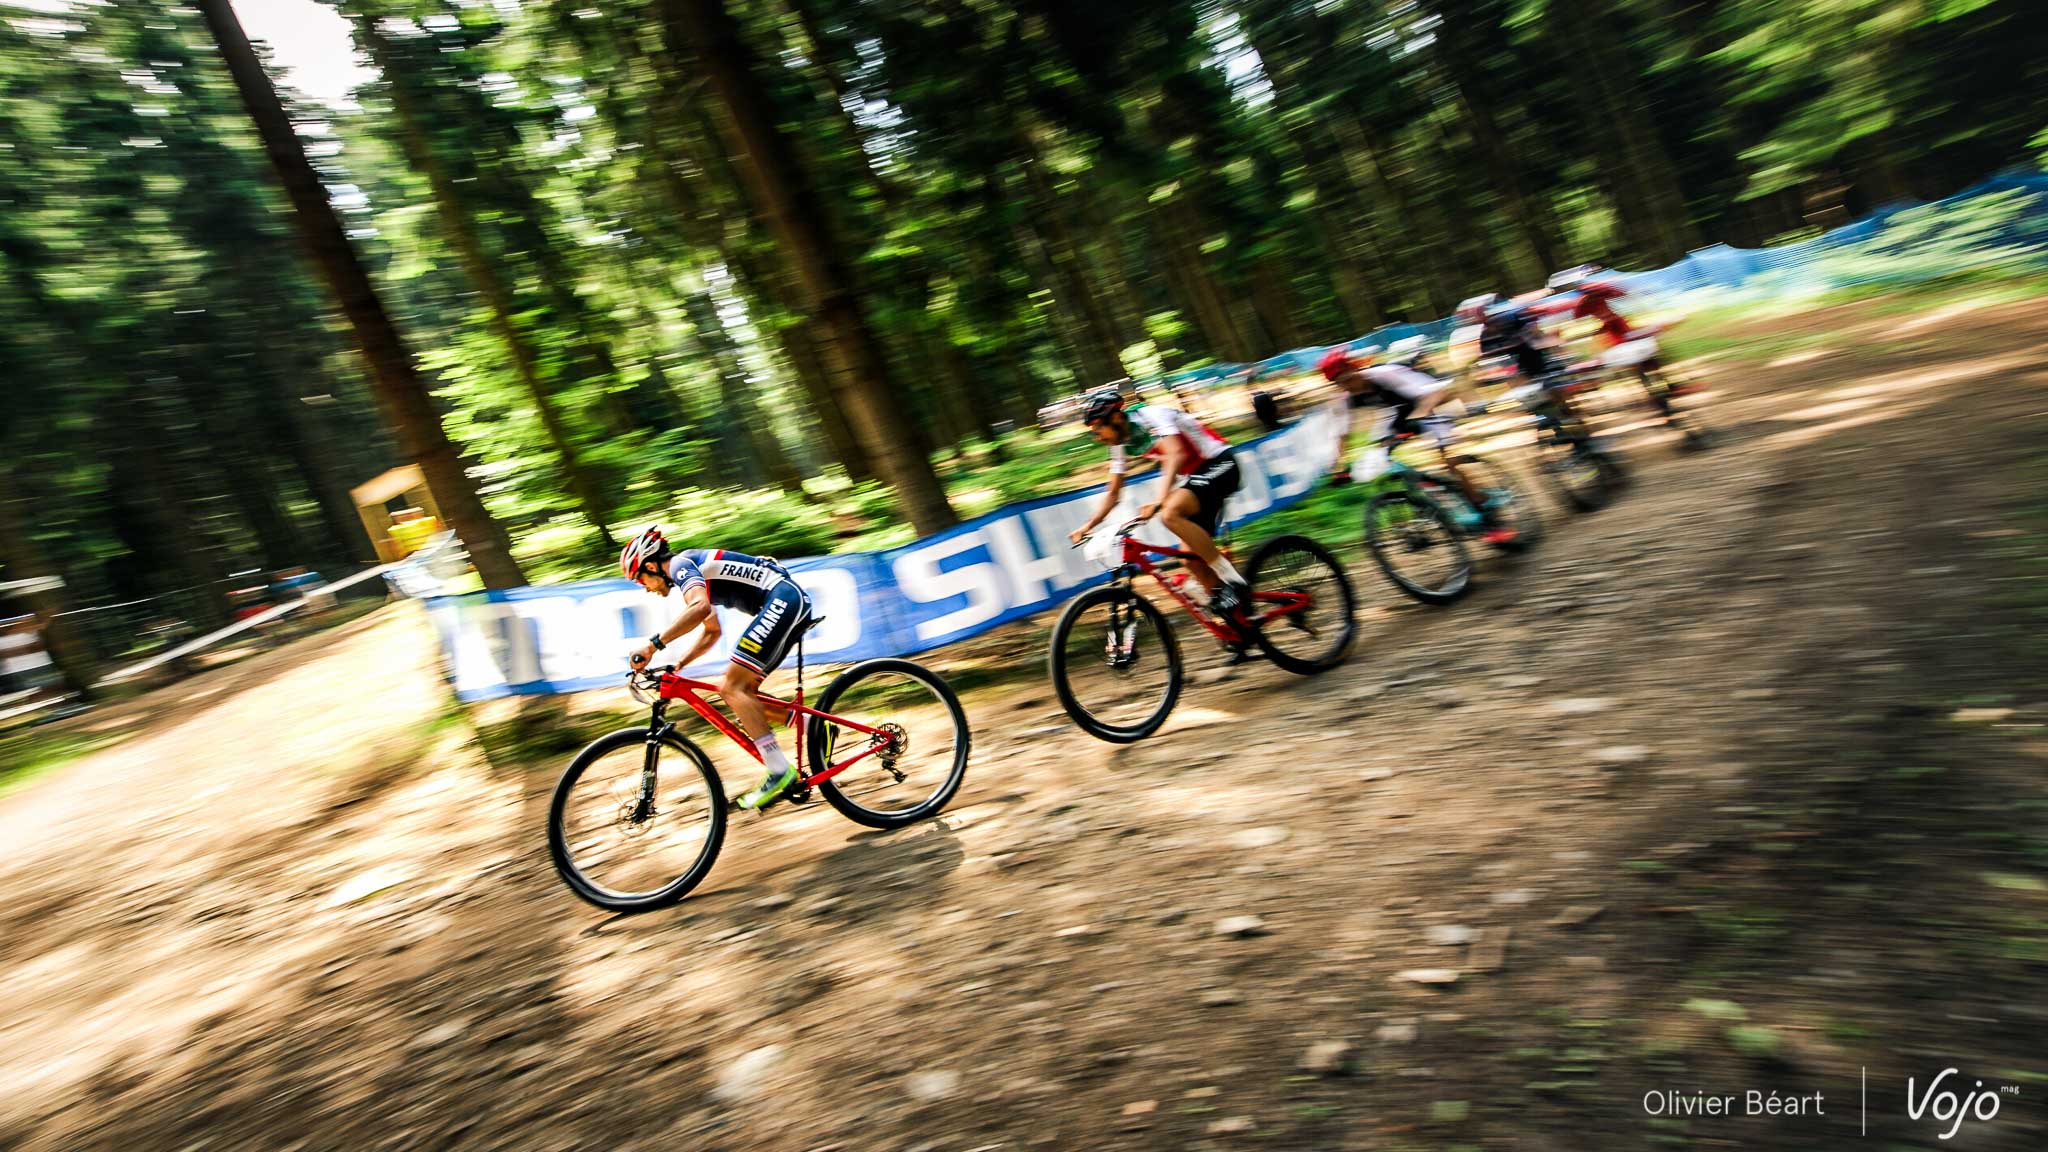 Nove_Mesto_Worlds_2016_U23_Men_Koretzky_Gaze_Copyright_OBeart_VojoMag-1